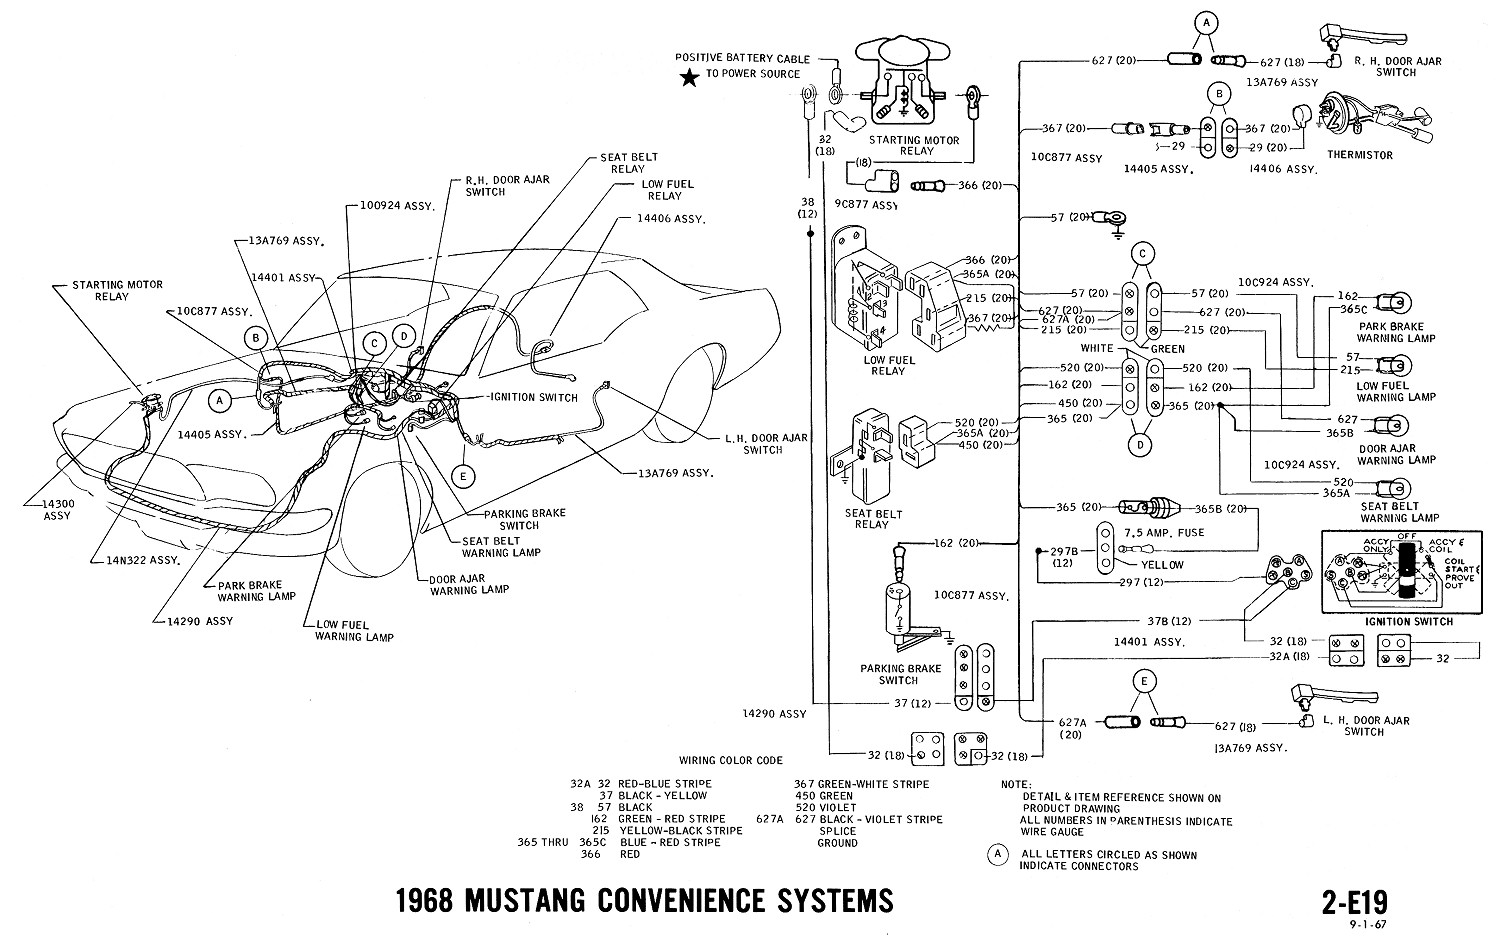 1968 Mustang Wiring Diagram Vacuum Schematics on bronco alternator wiring